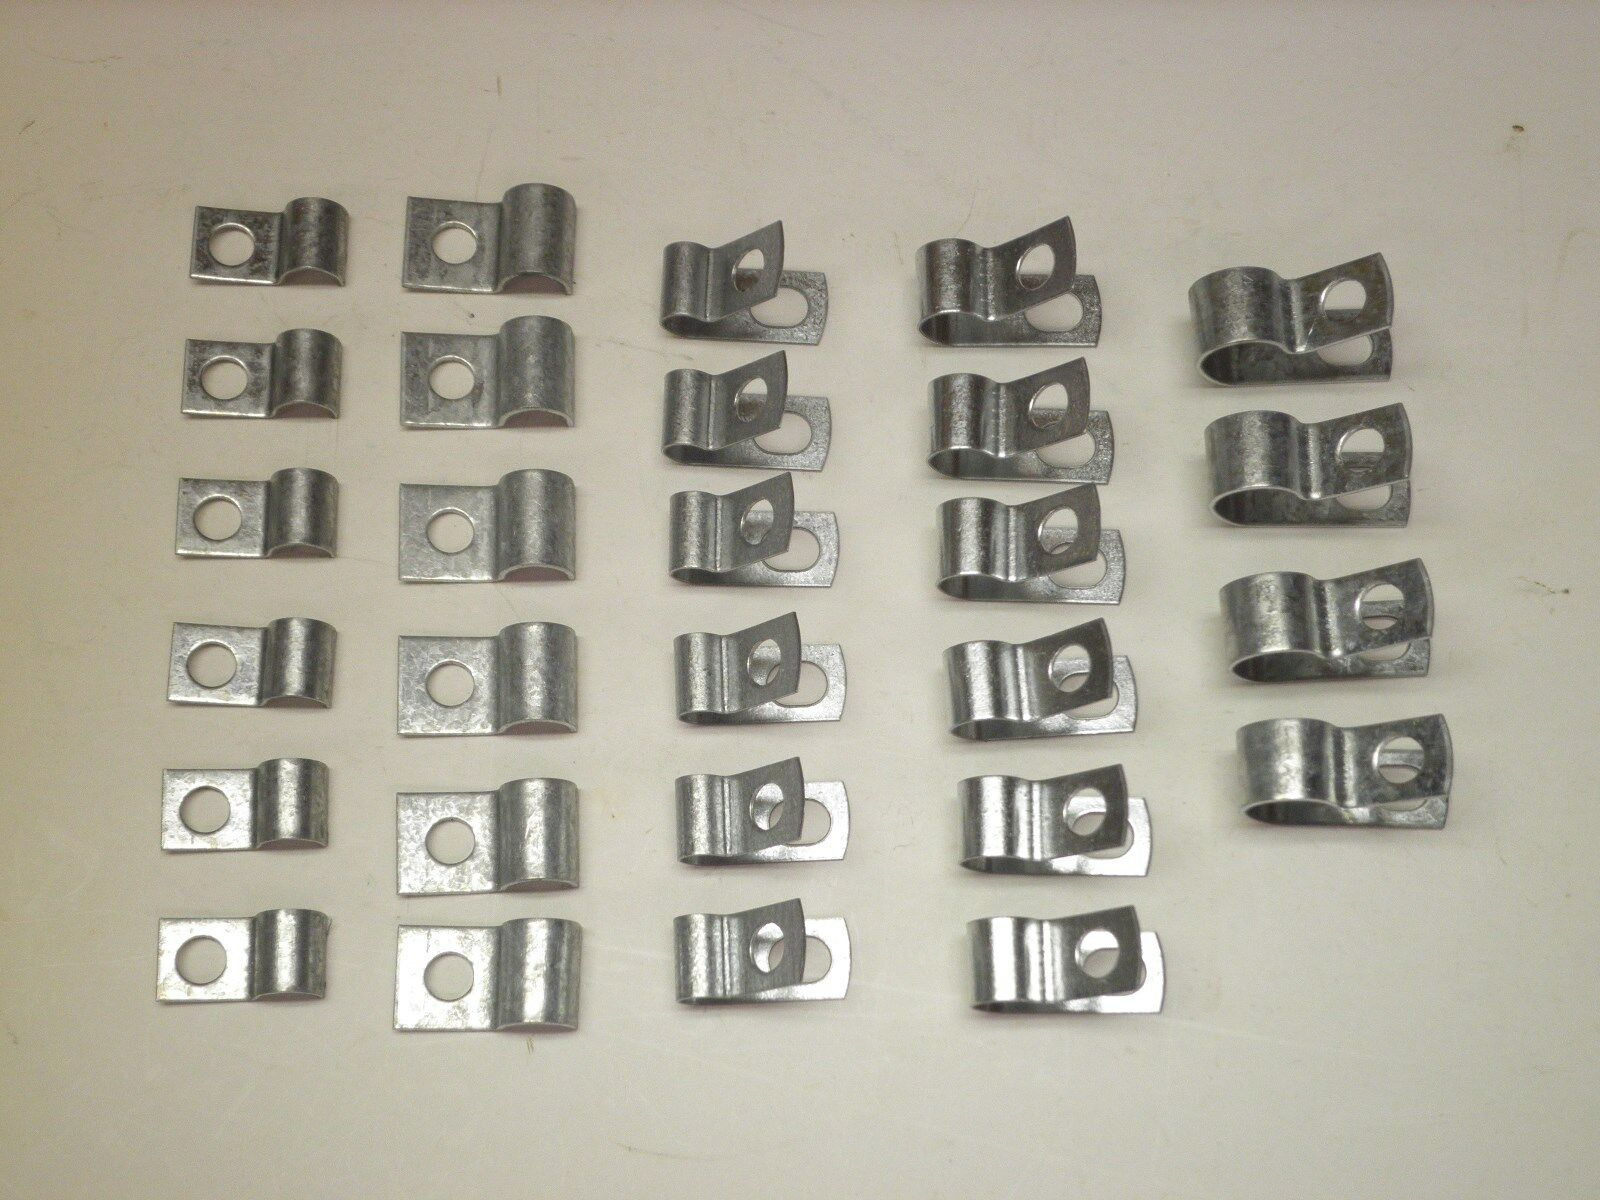 hight resolution of electrical wiring harness clips straps mb gpw m38 m38a1 m151 cj2a deville wiring harness cj5